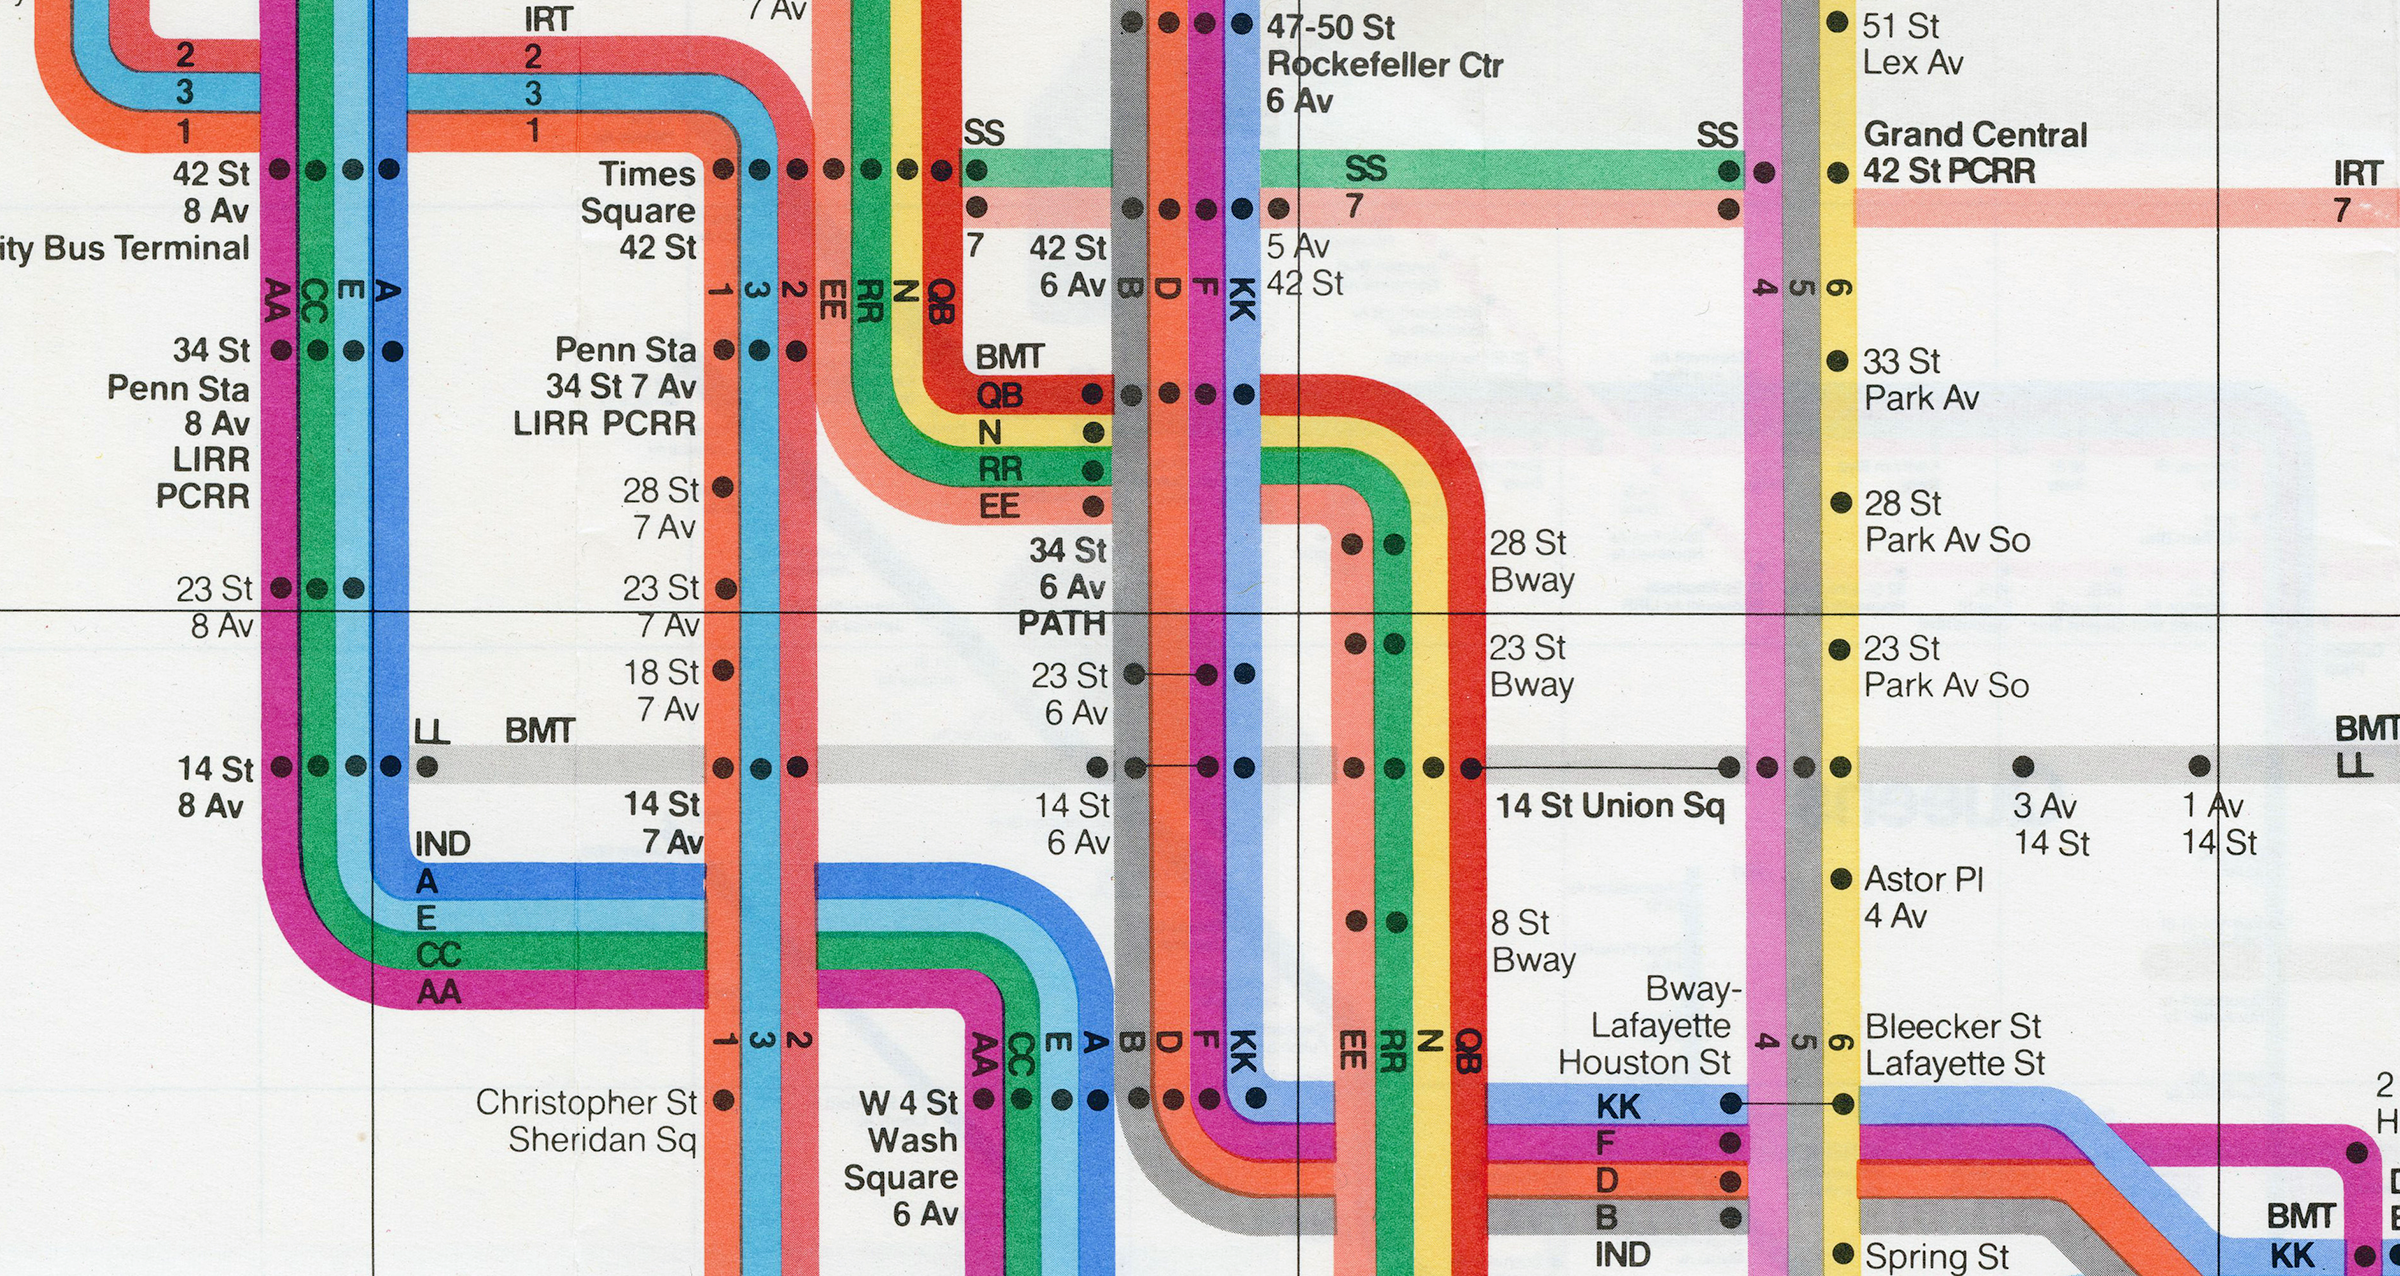 Map Of The New York Subway.How Vignelli S Design Still Influences Nyc S Subway Maps Today By Allen Hillery Nightingale Medium